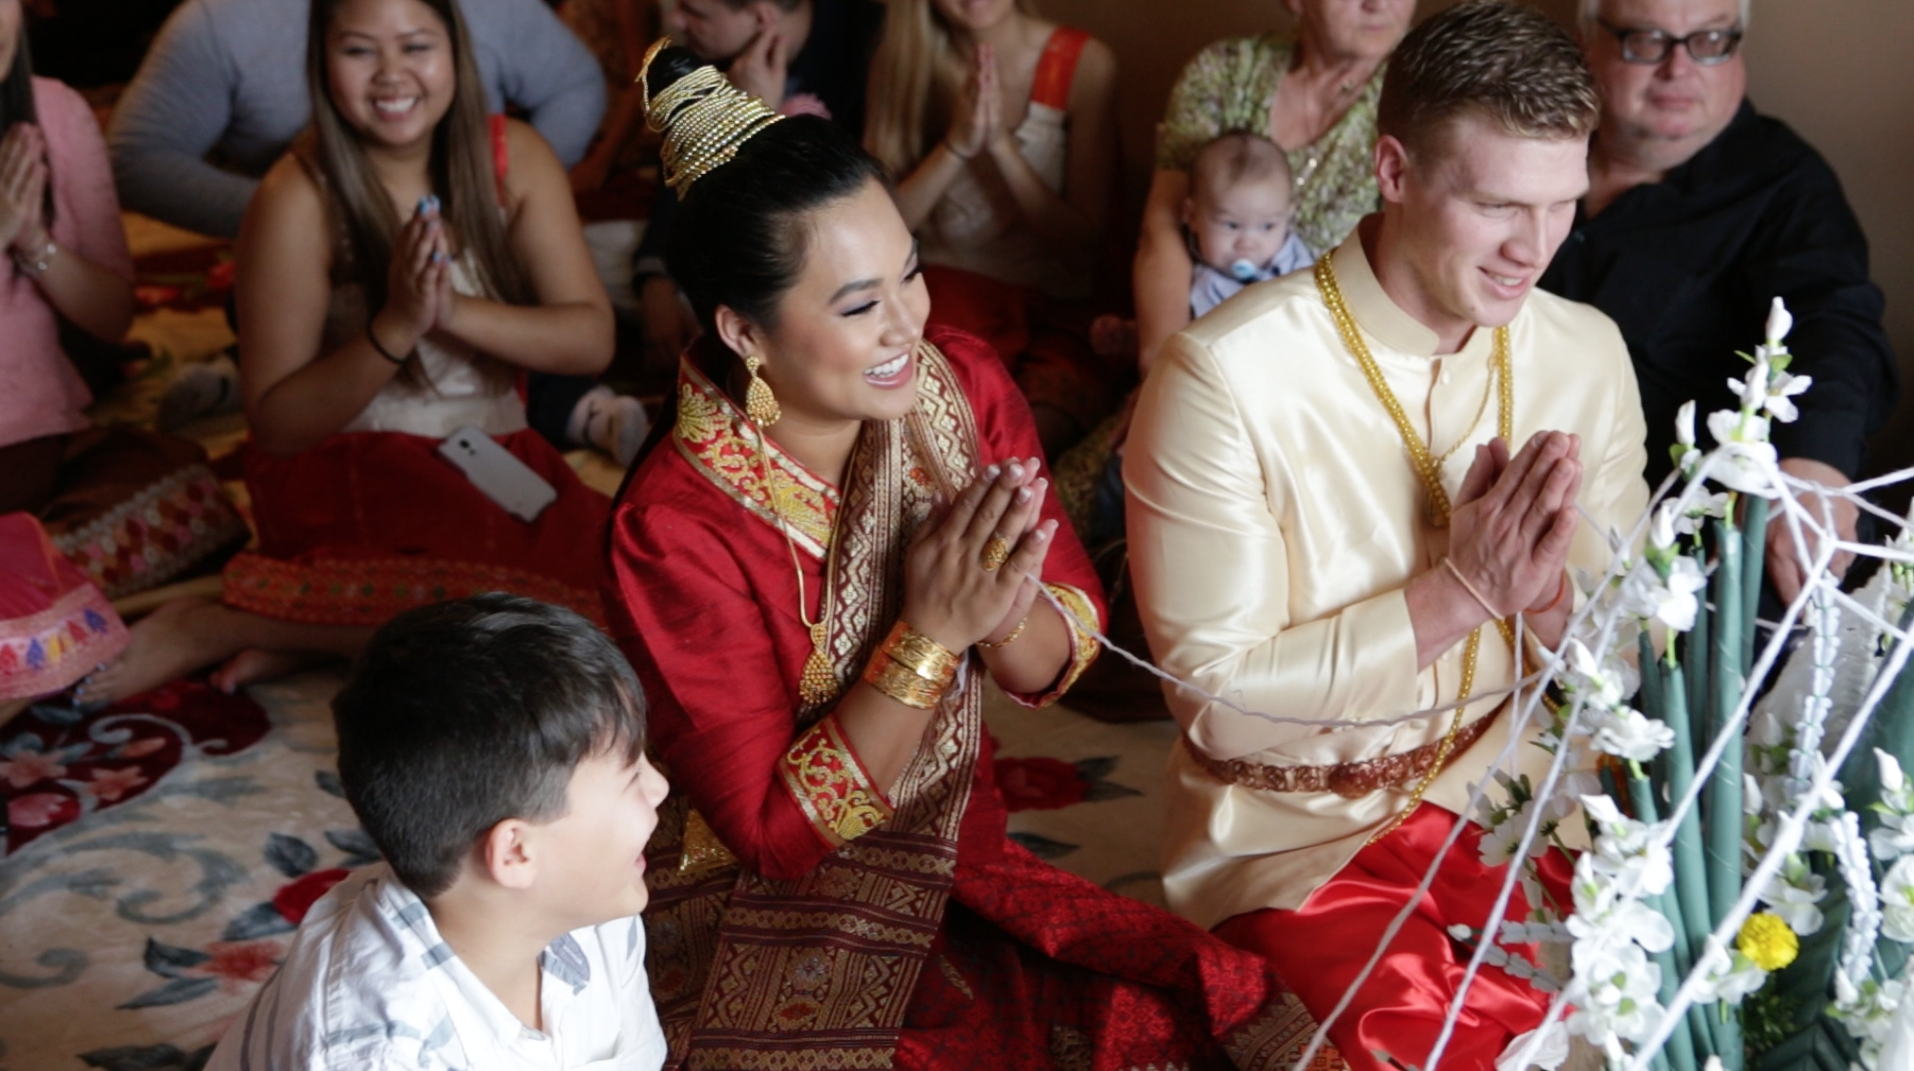 Bryan and Lyna's Laos wedding Ceremony  (click to see their video).